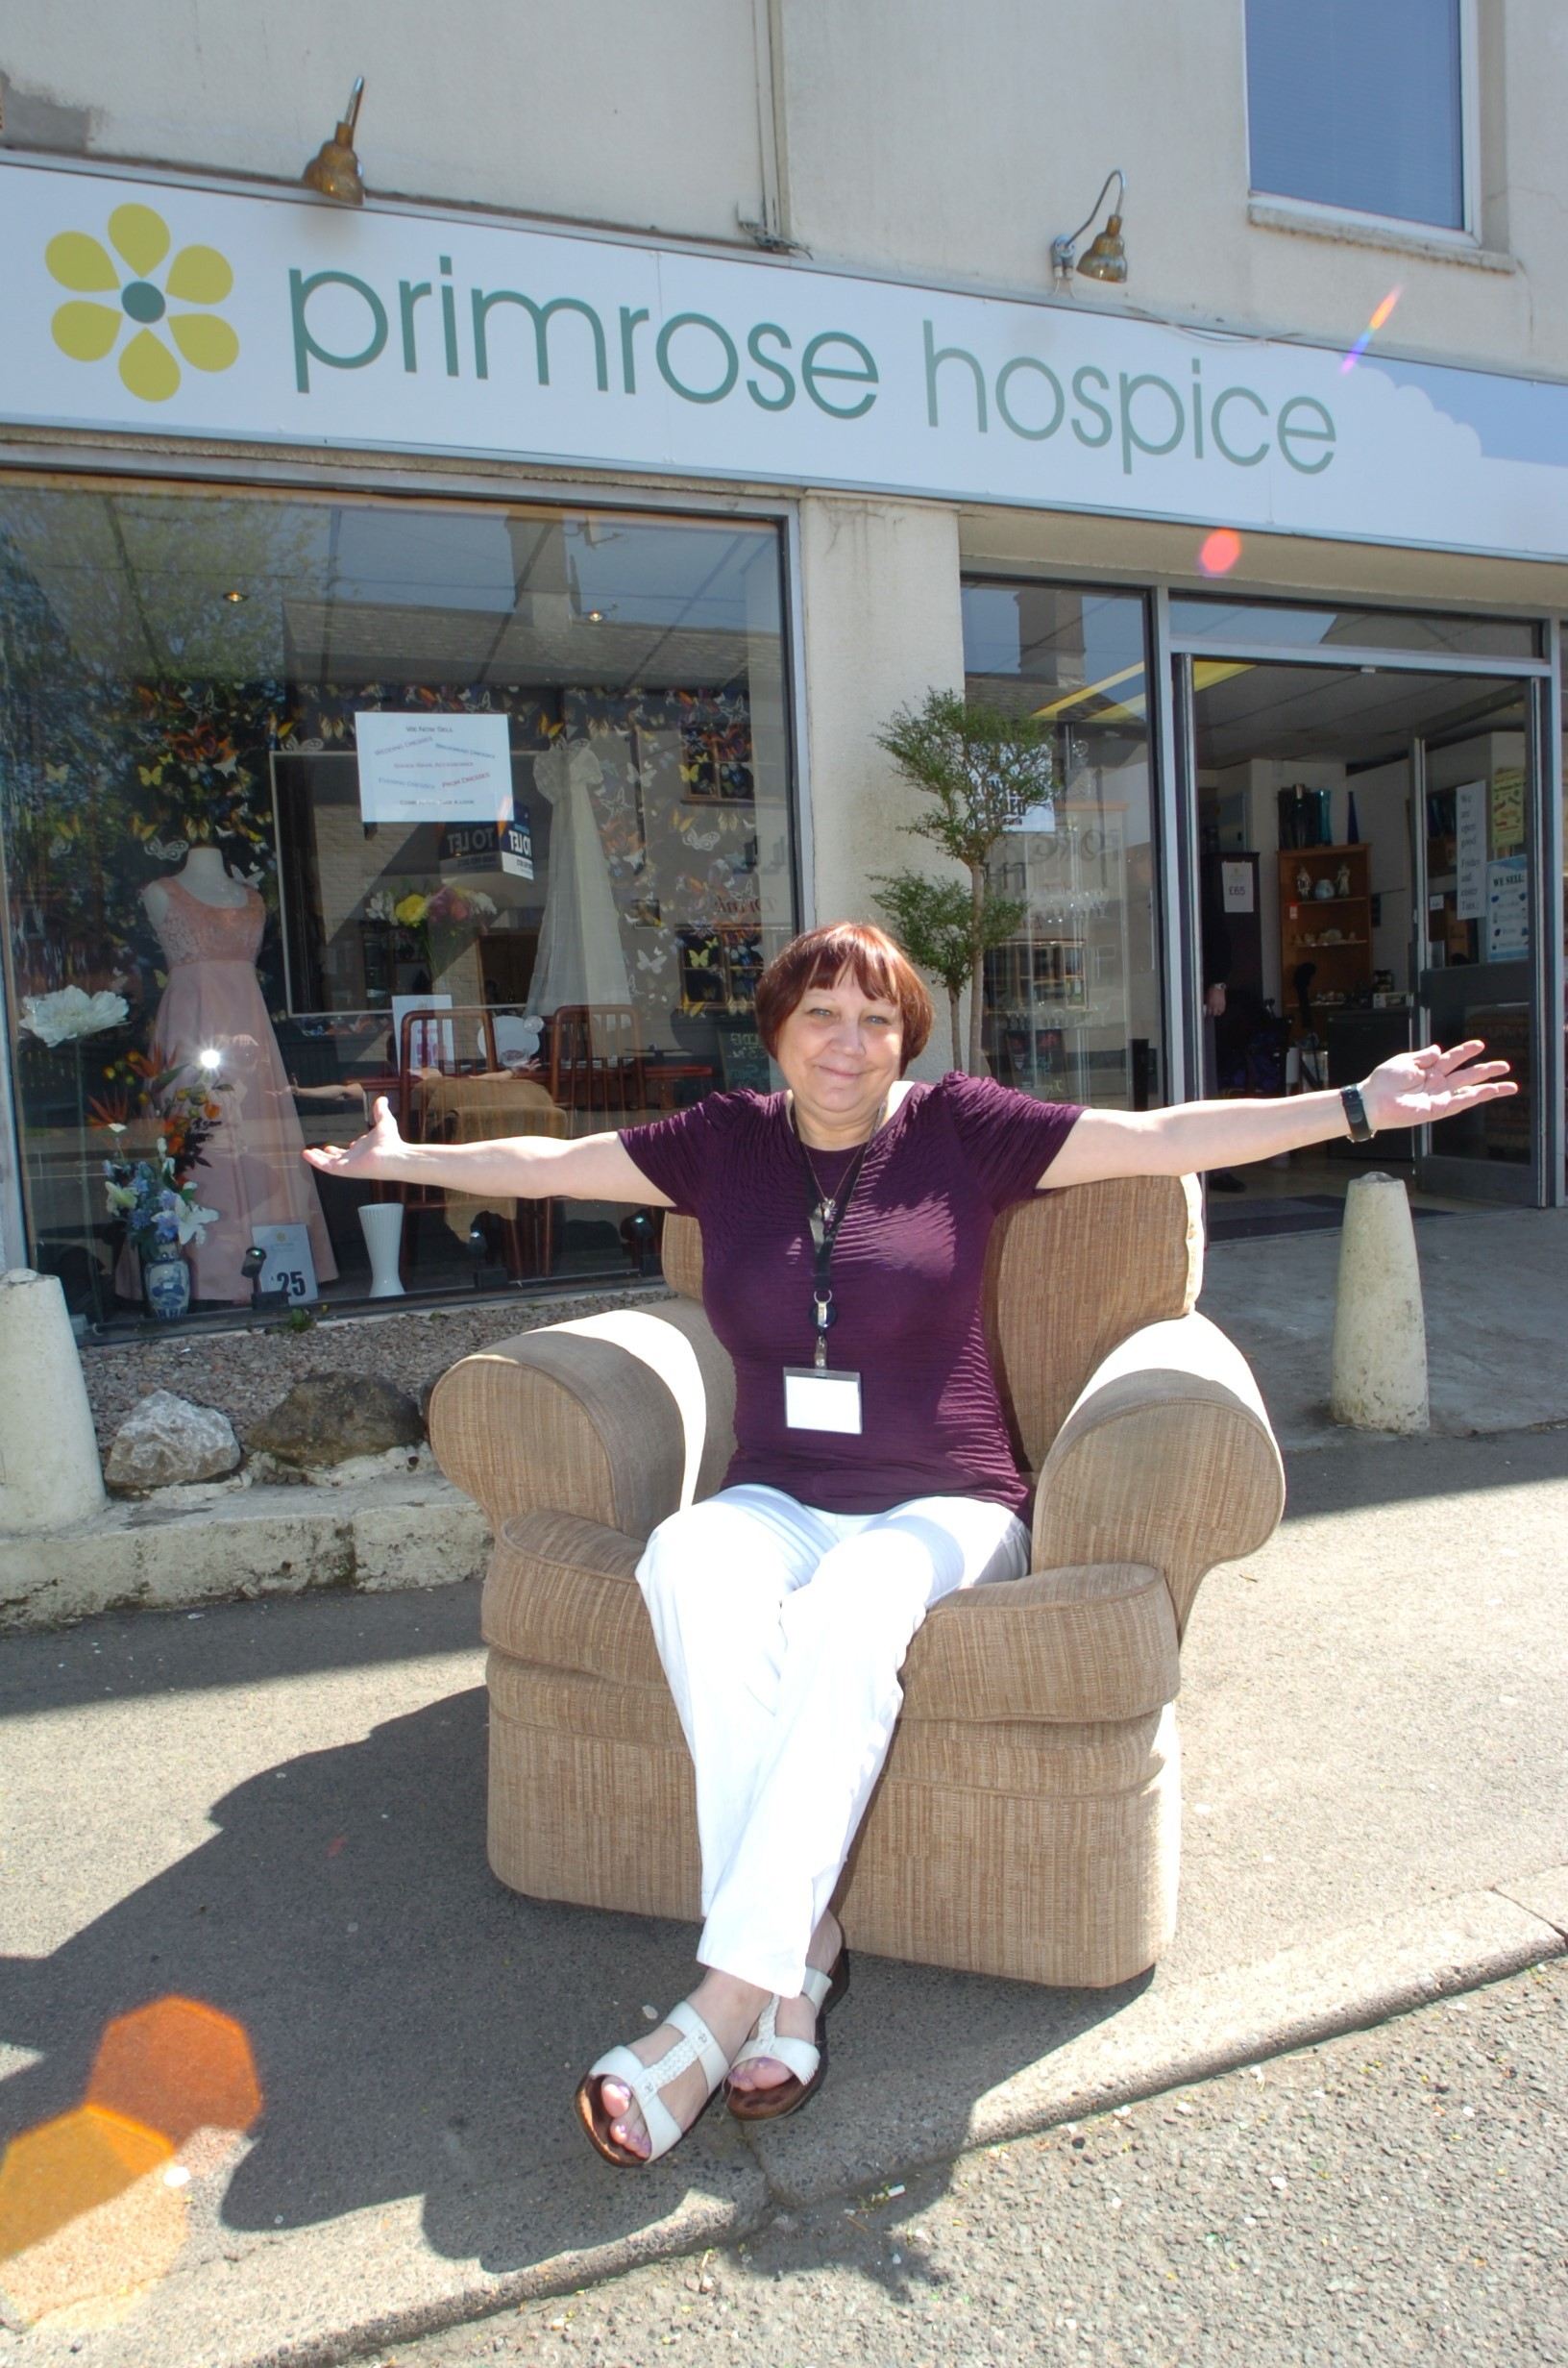 Manager Steph Cox outside the new Primrose Hospice shop. Buy photo RMM171401b from redditchadvetiser.co.uk/pictures or call 01527 889027